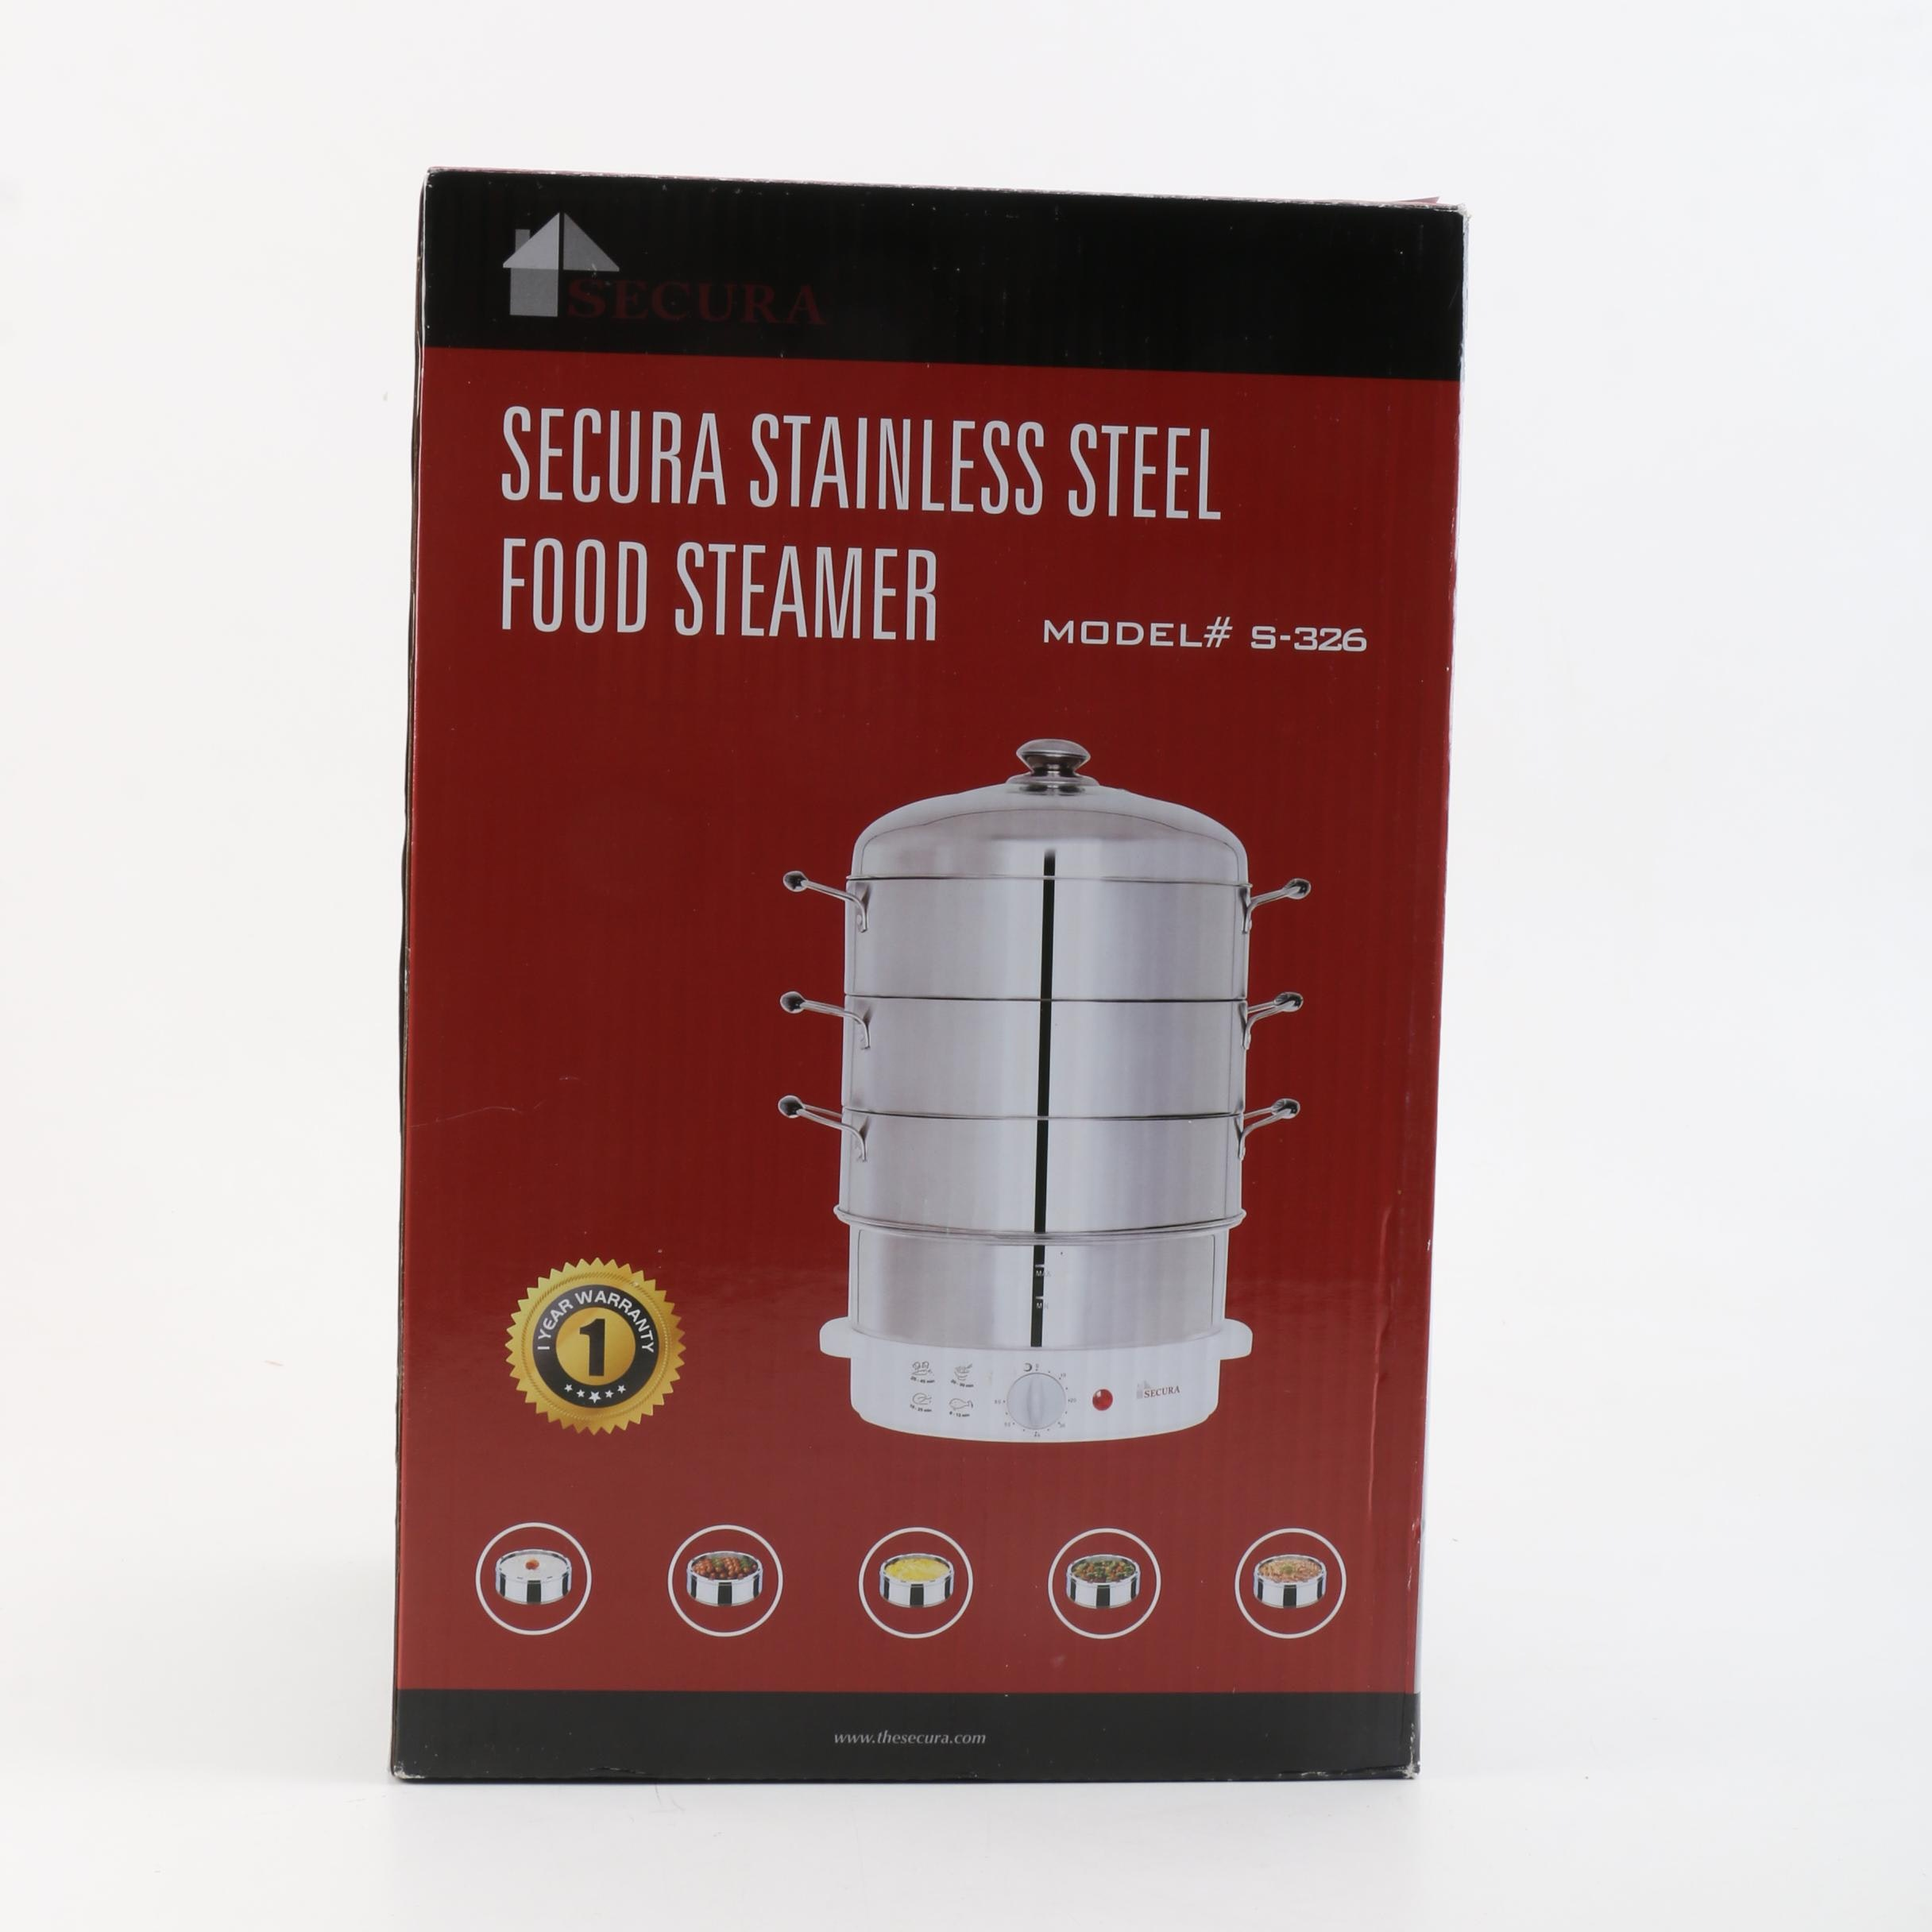 Secura Stainless Steel Food Steamer